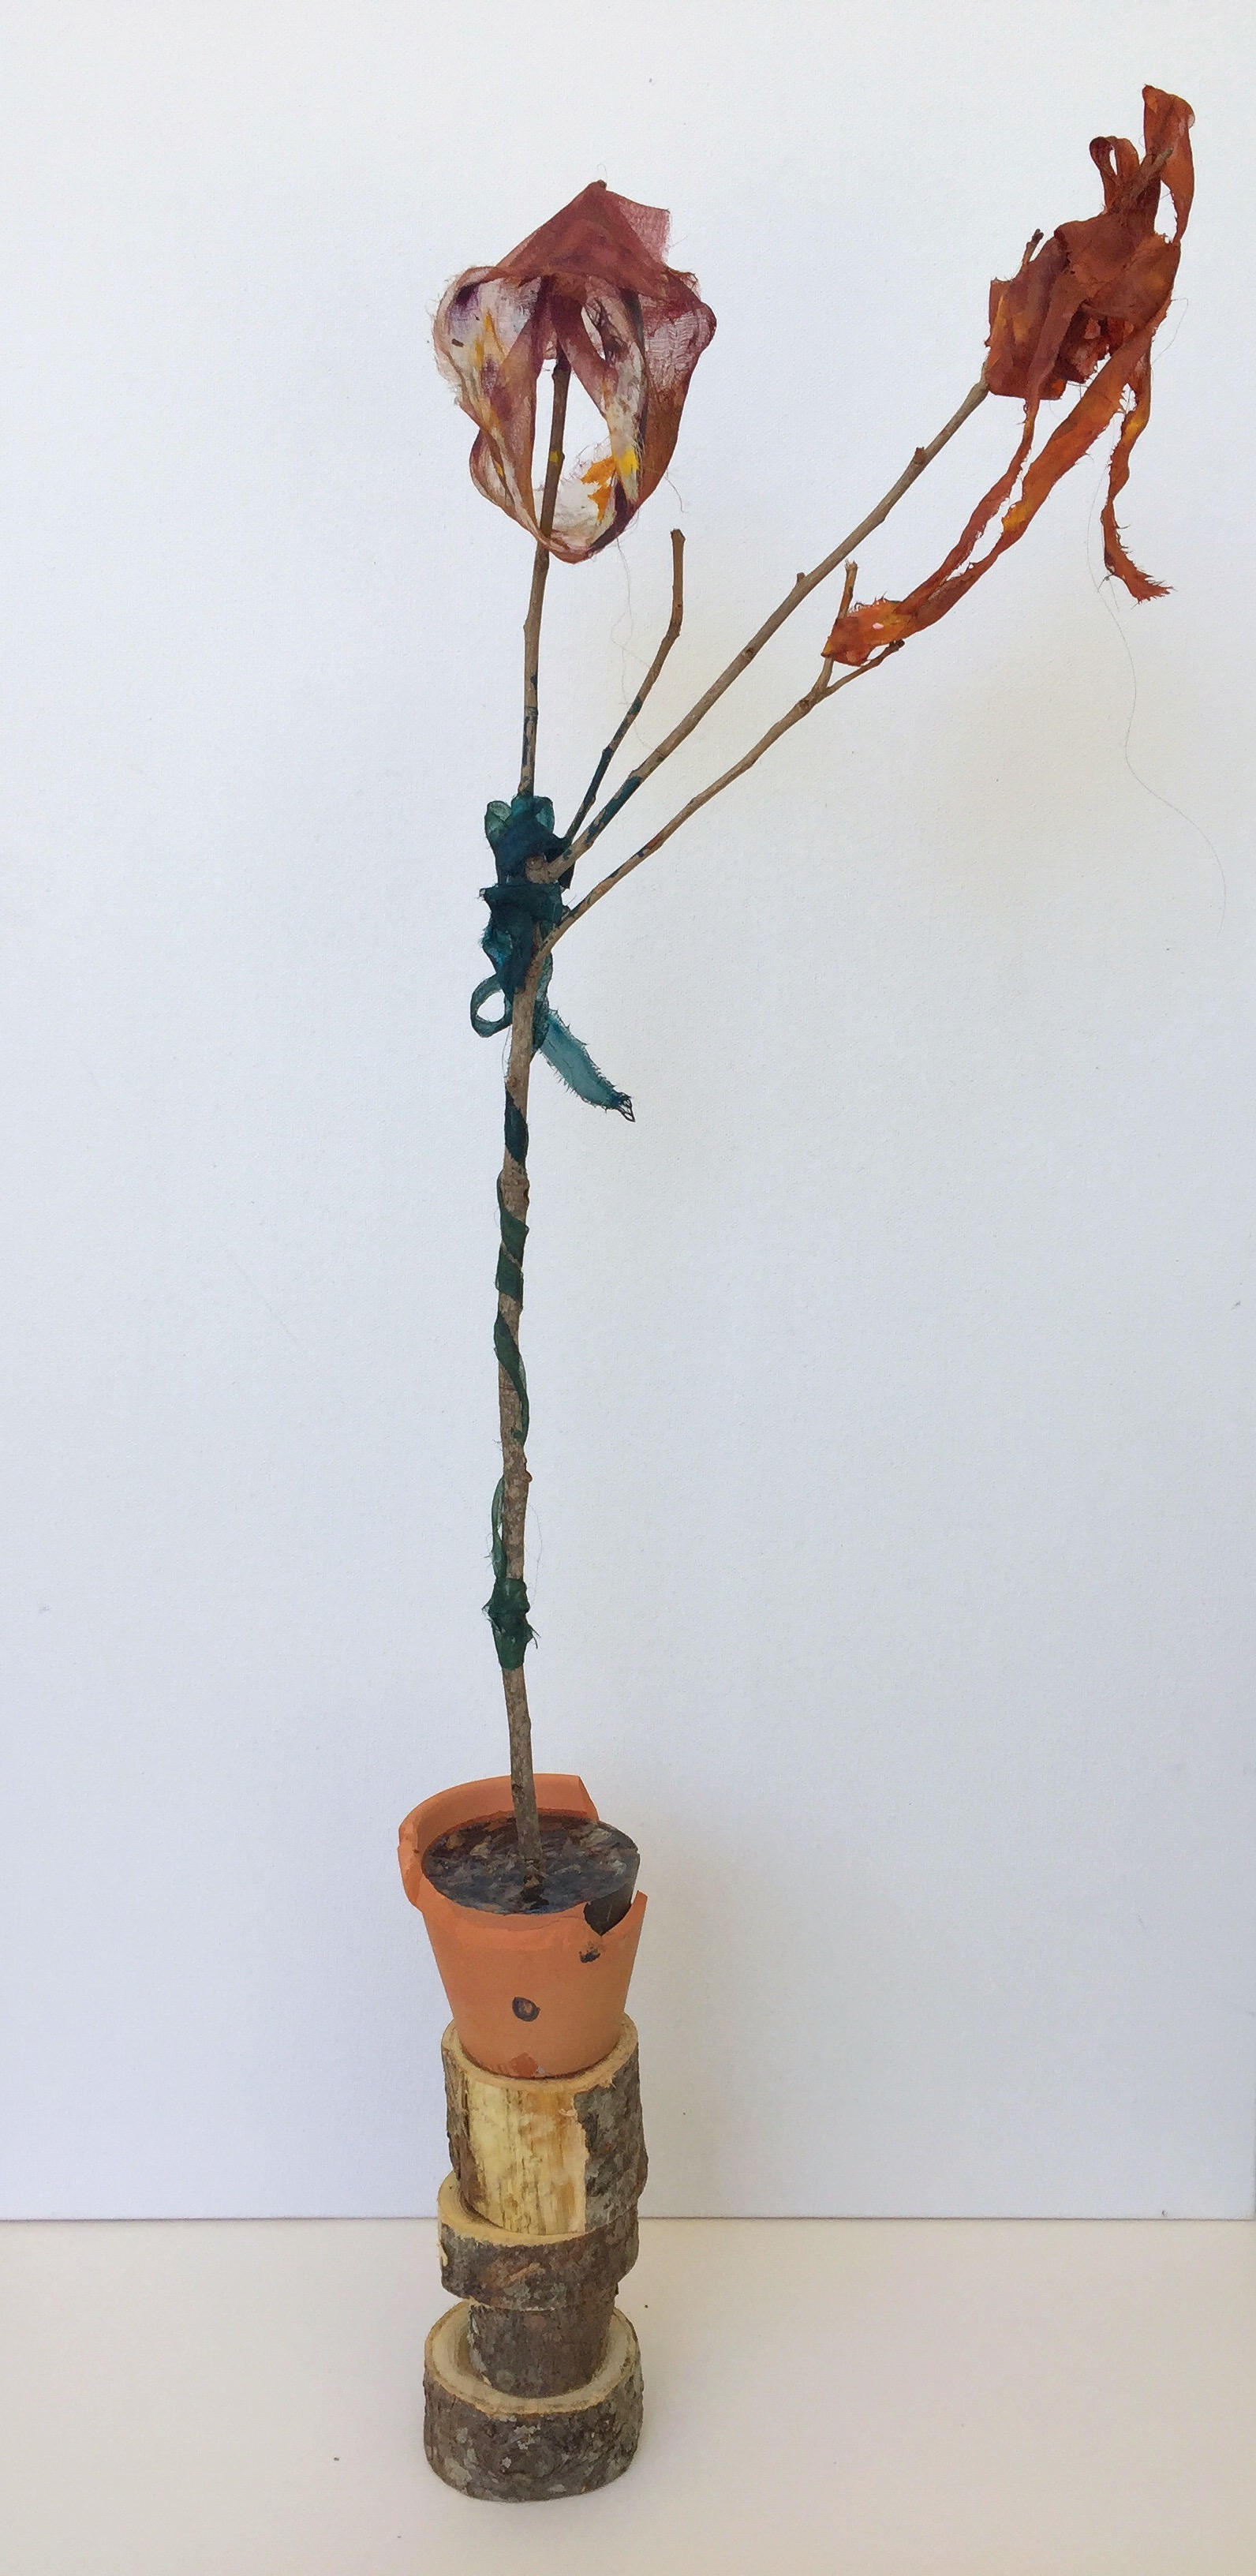 Stretching,  2018, clay, oak, acrylic resin, debris, acrylic paint, branch